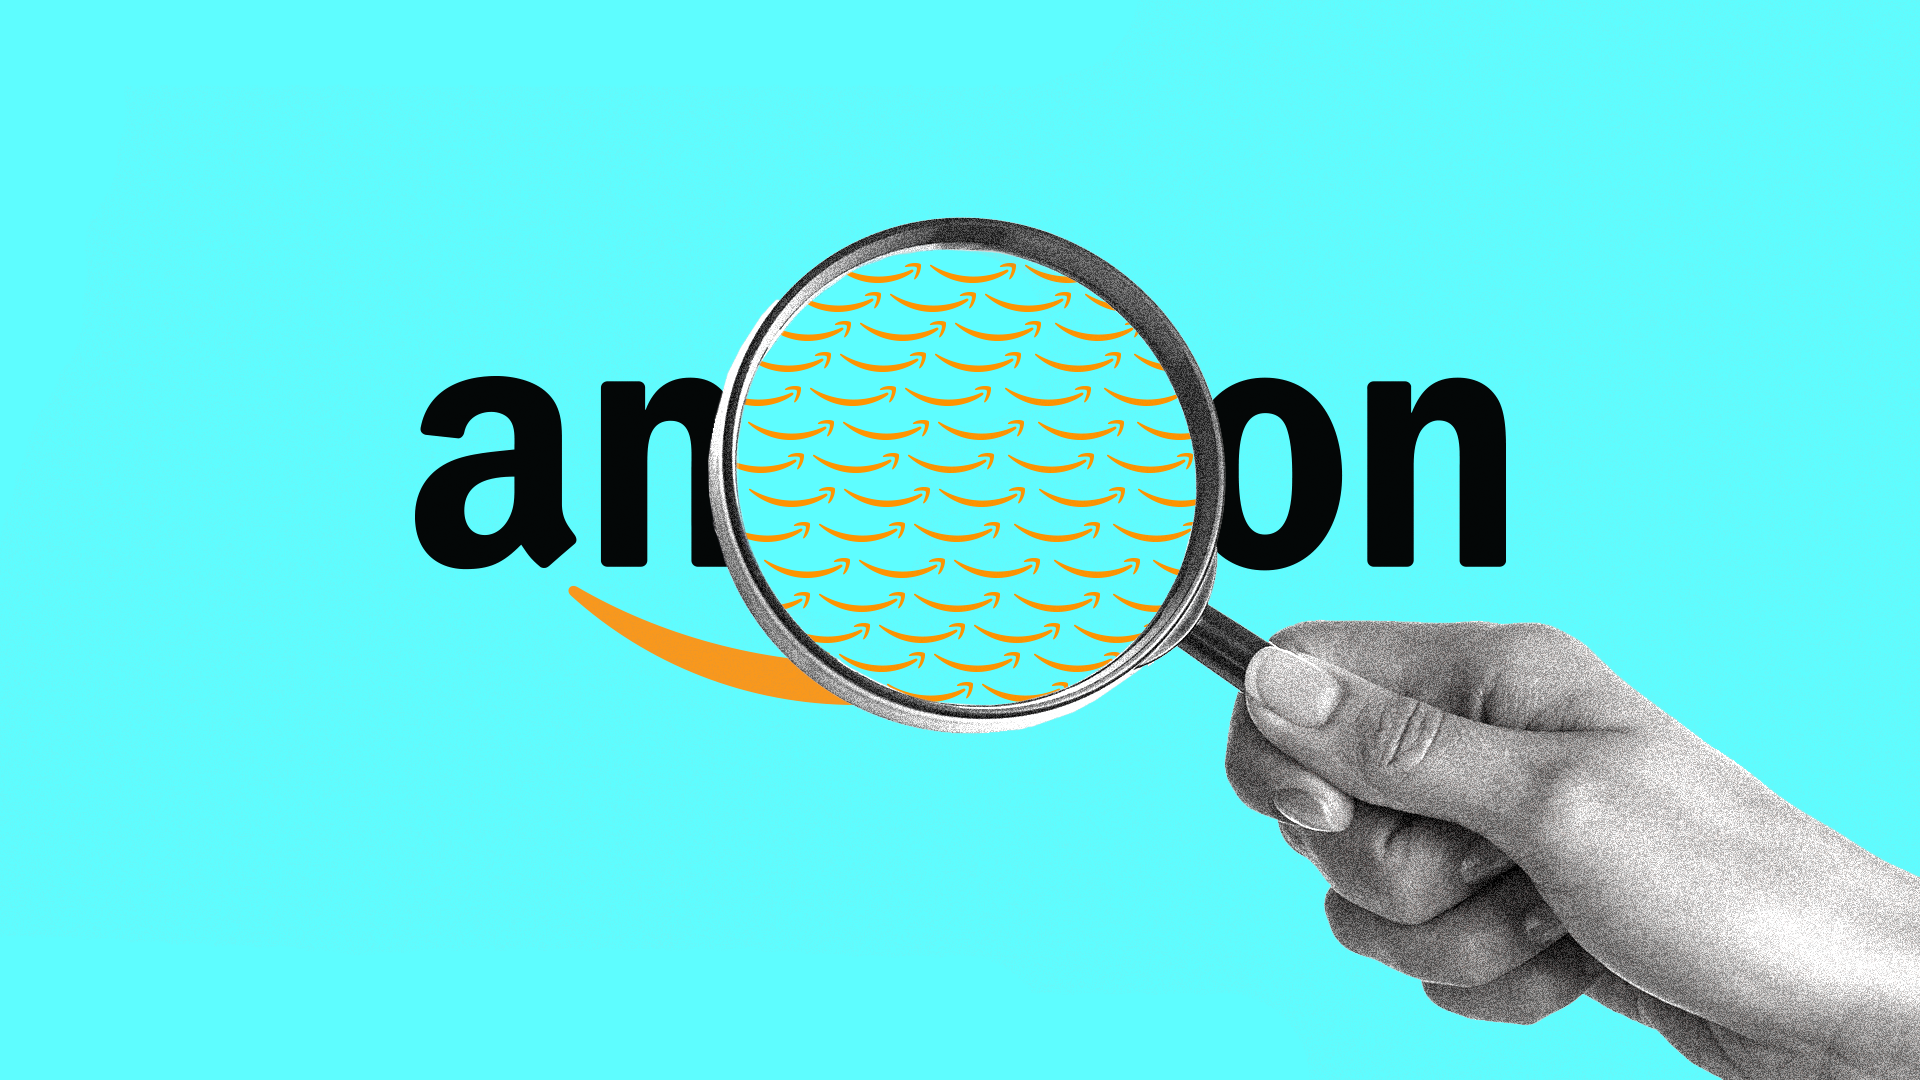 Amazon has a misinformation problem, too